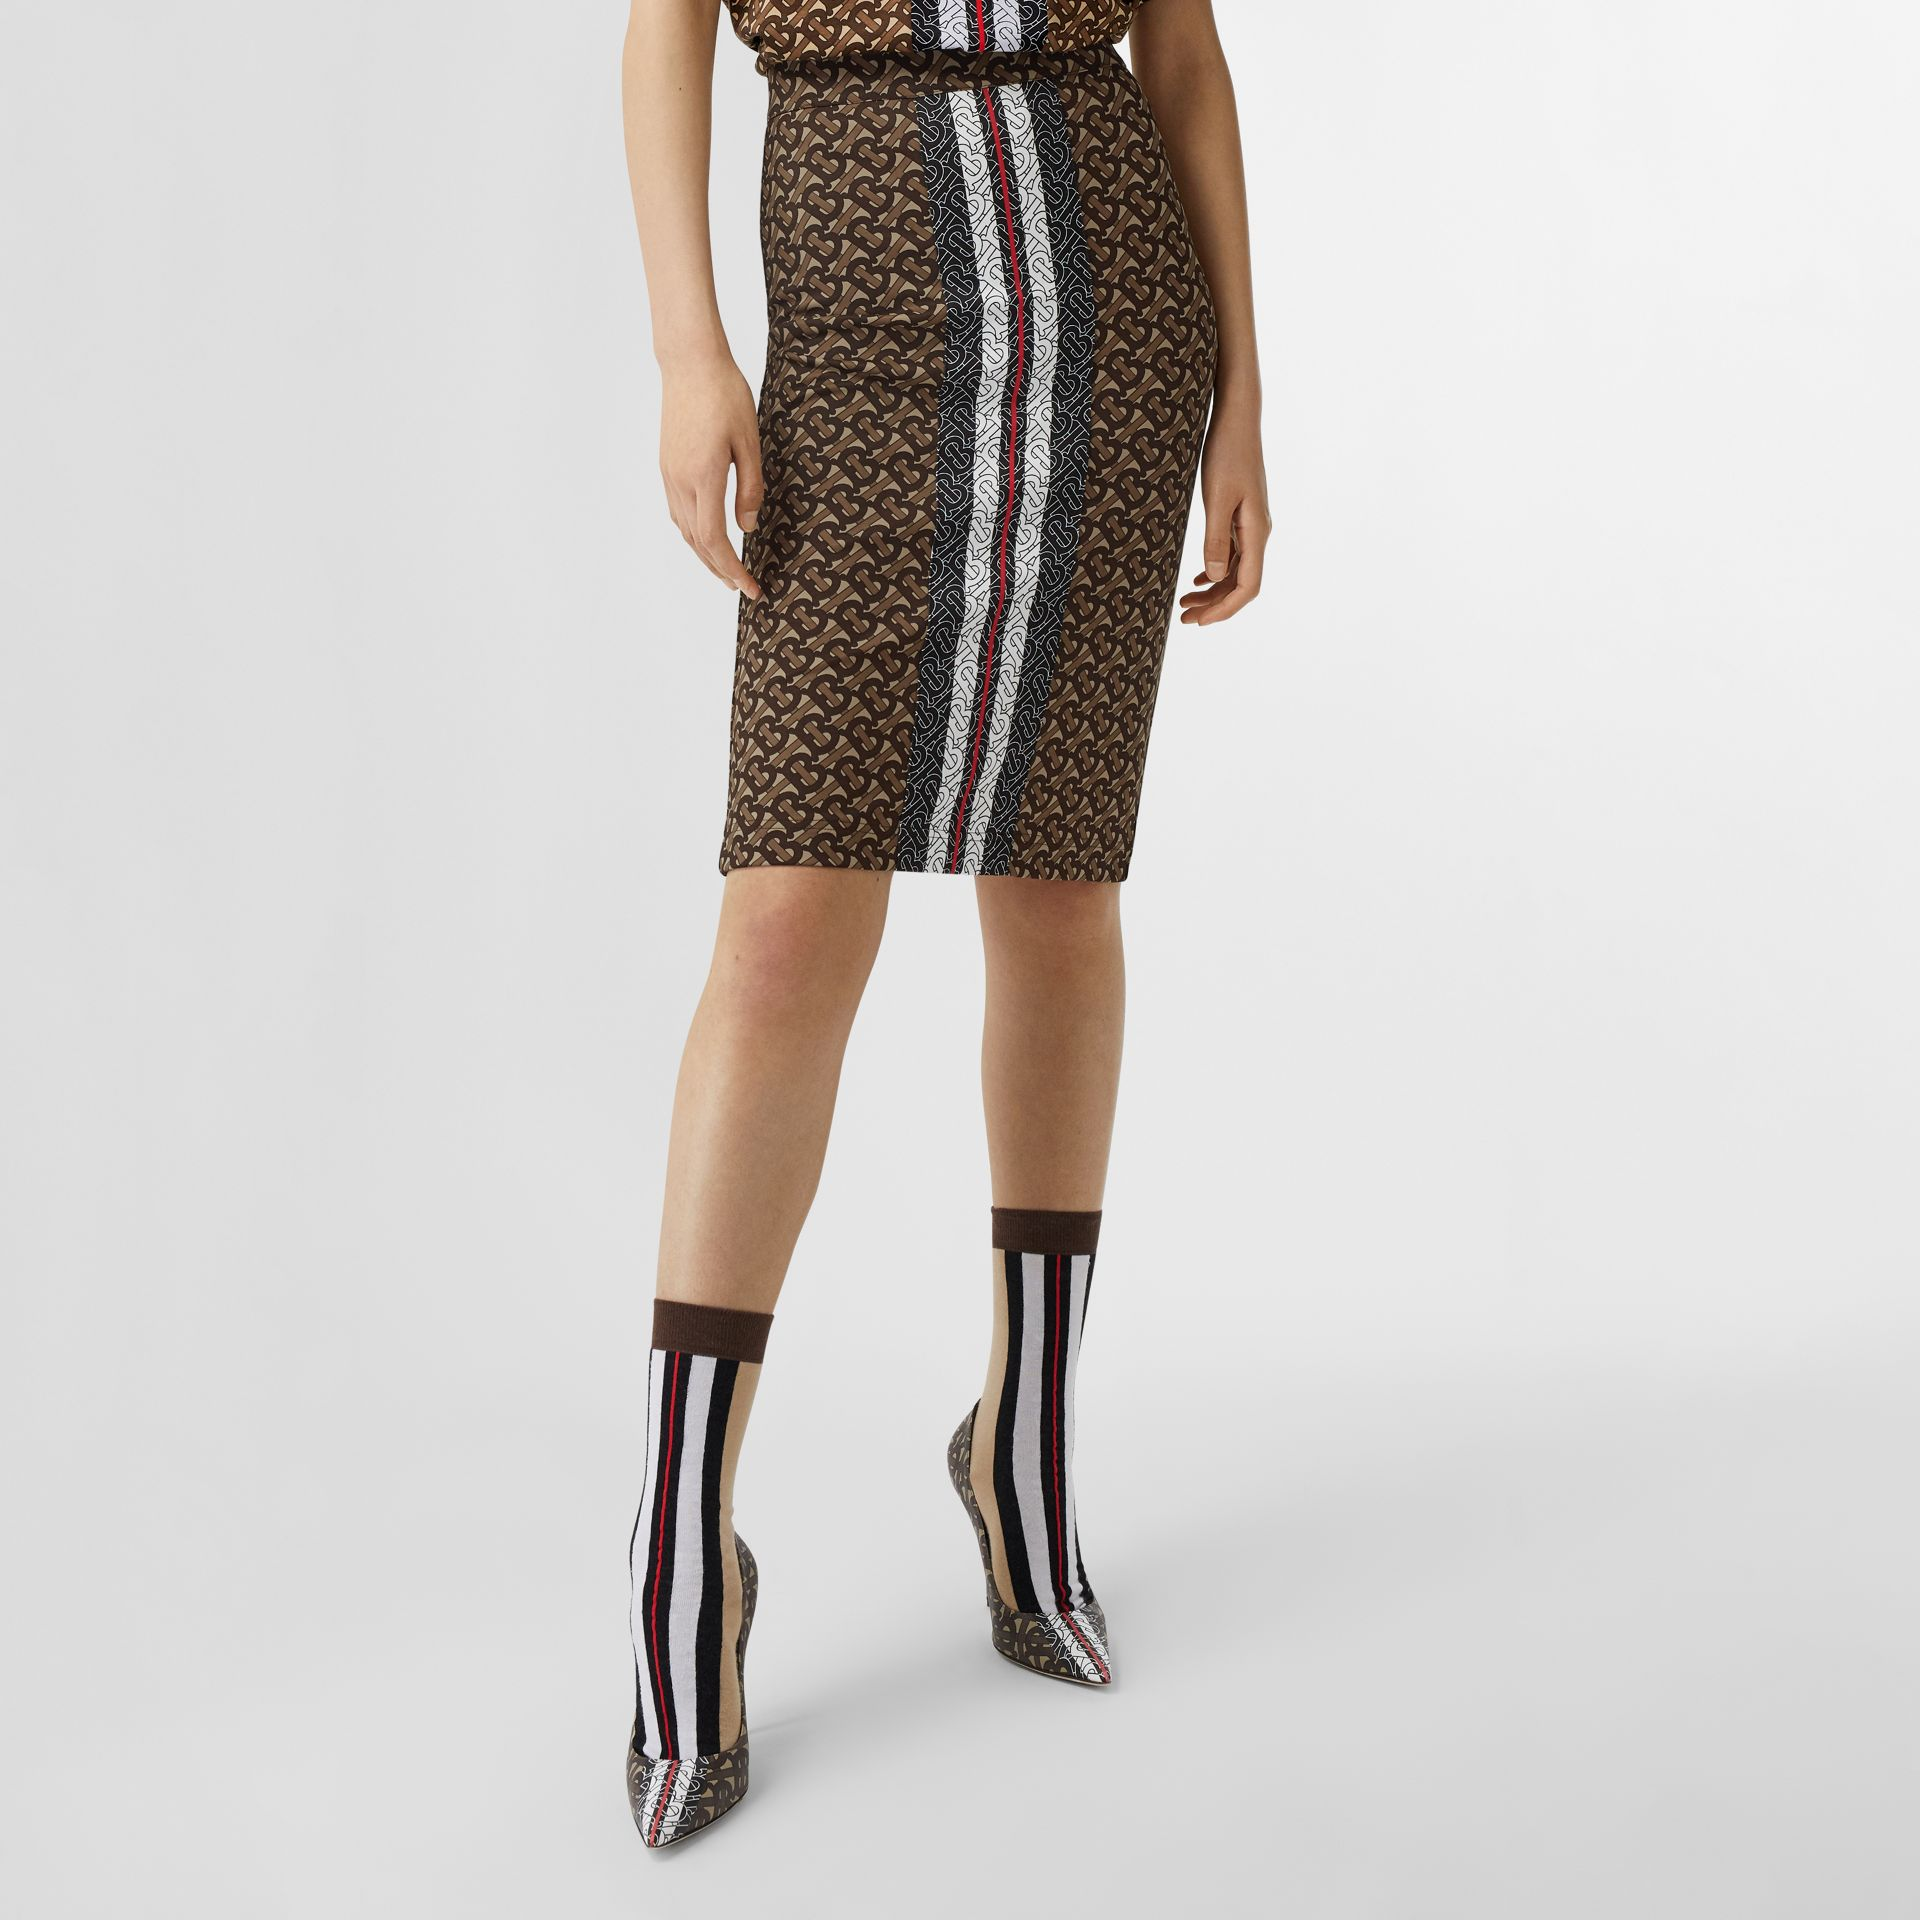 Monogram Stripe Print Stretch Jersey Pencil Skirt in Bridle Brown - Women | Burberry - gallery image 4